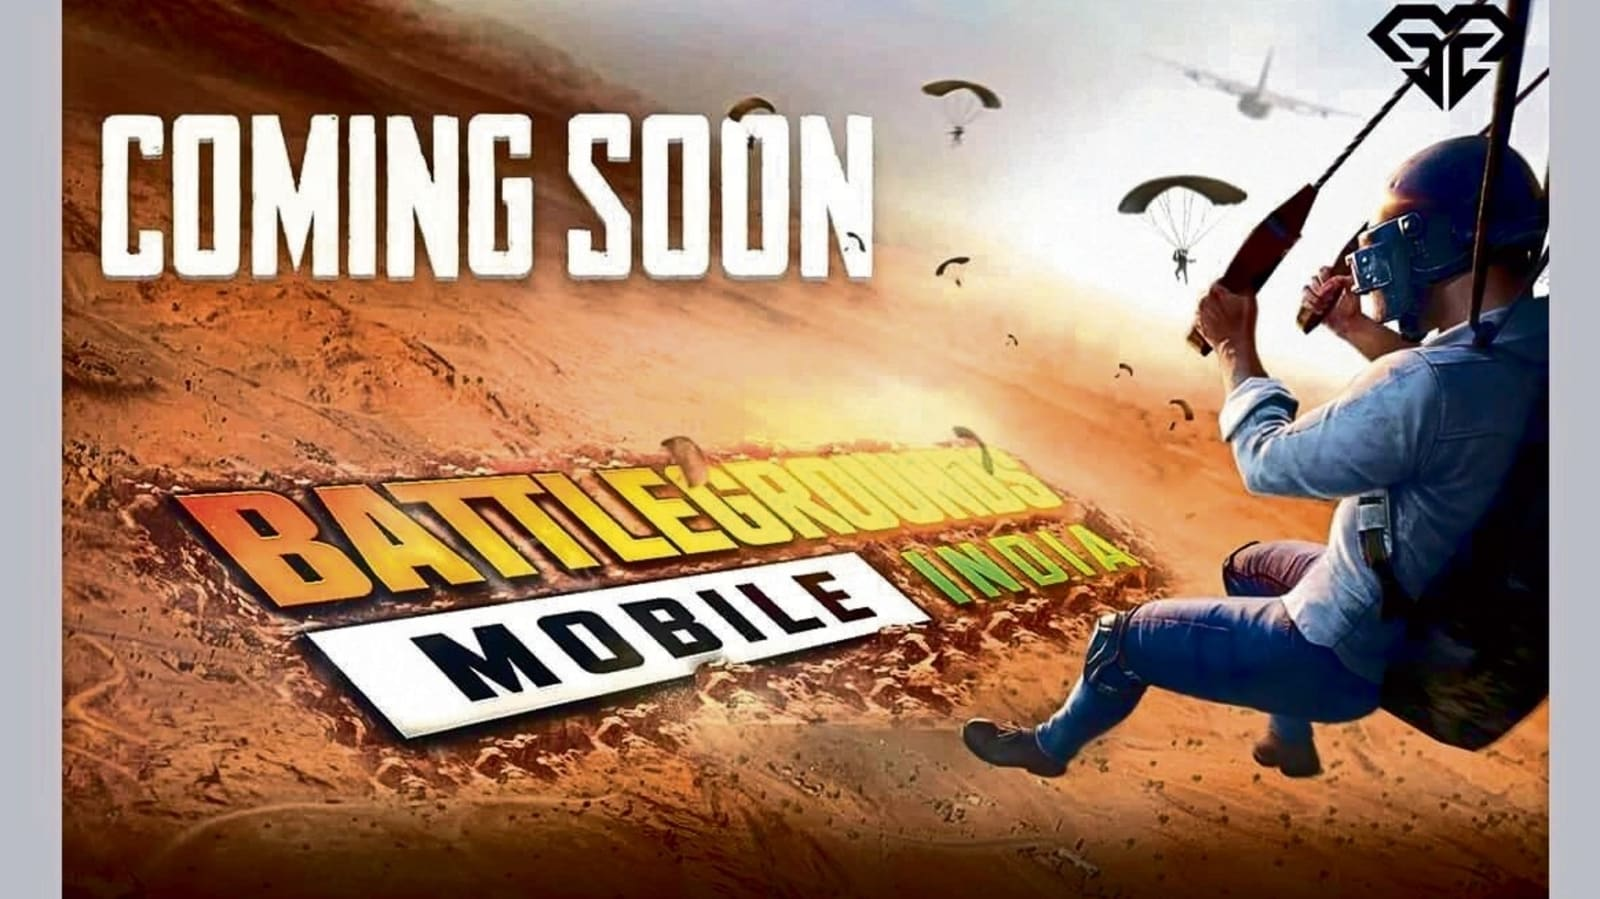 The new PUBG Mobile India avatar is causing concern, forcing the company to act